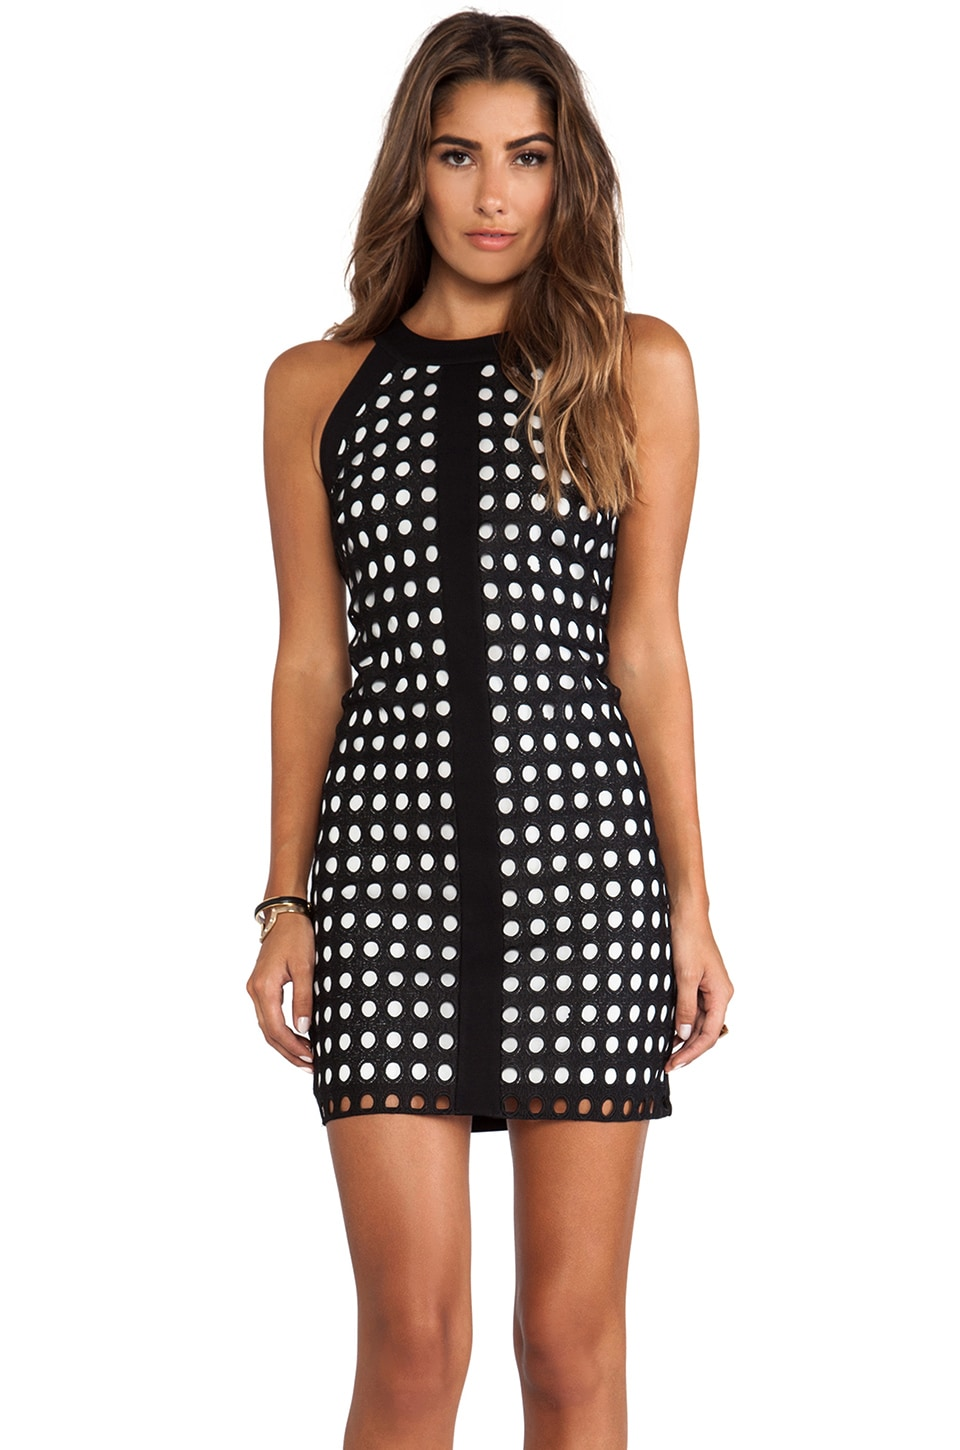 Bailey 44 Playhouse Dress in Black